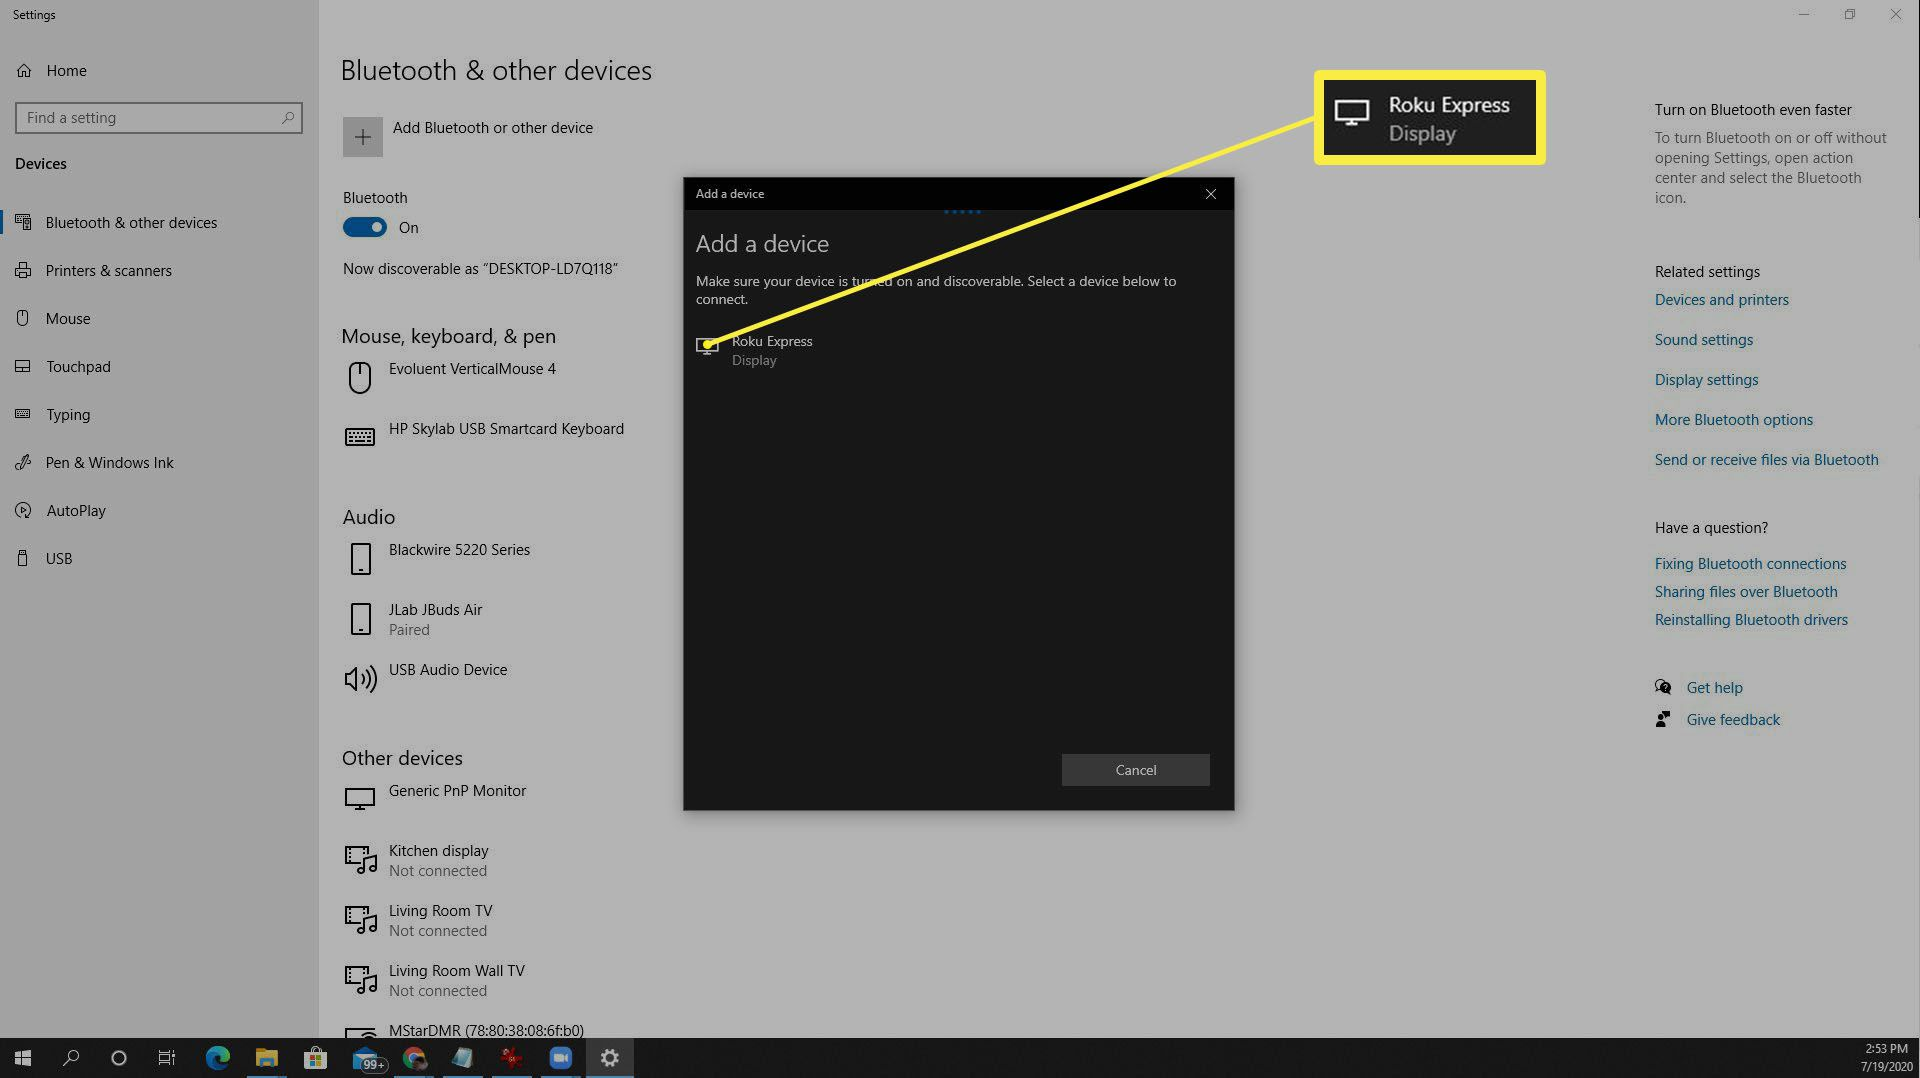 Screenshot of Roku device detected from Windows 10.